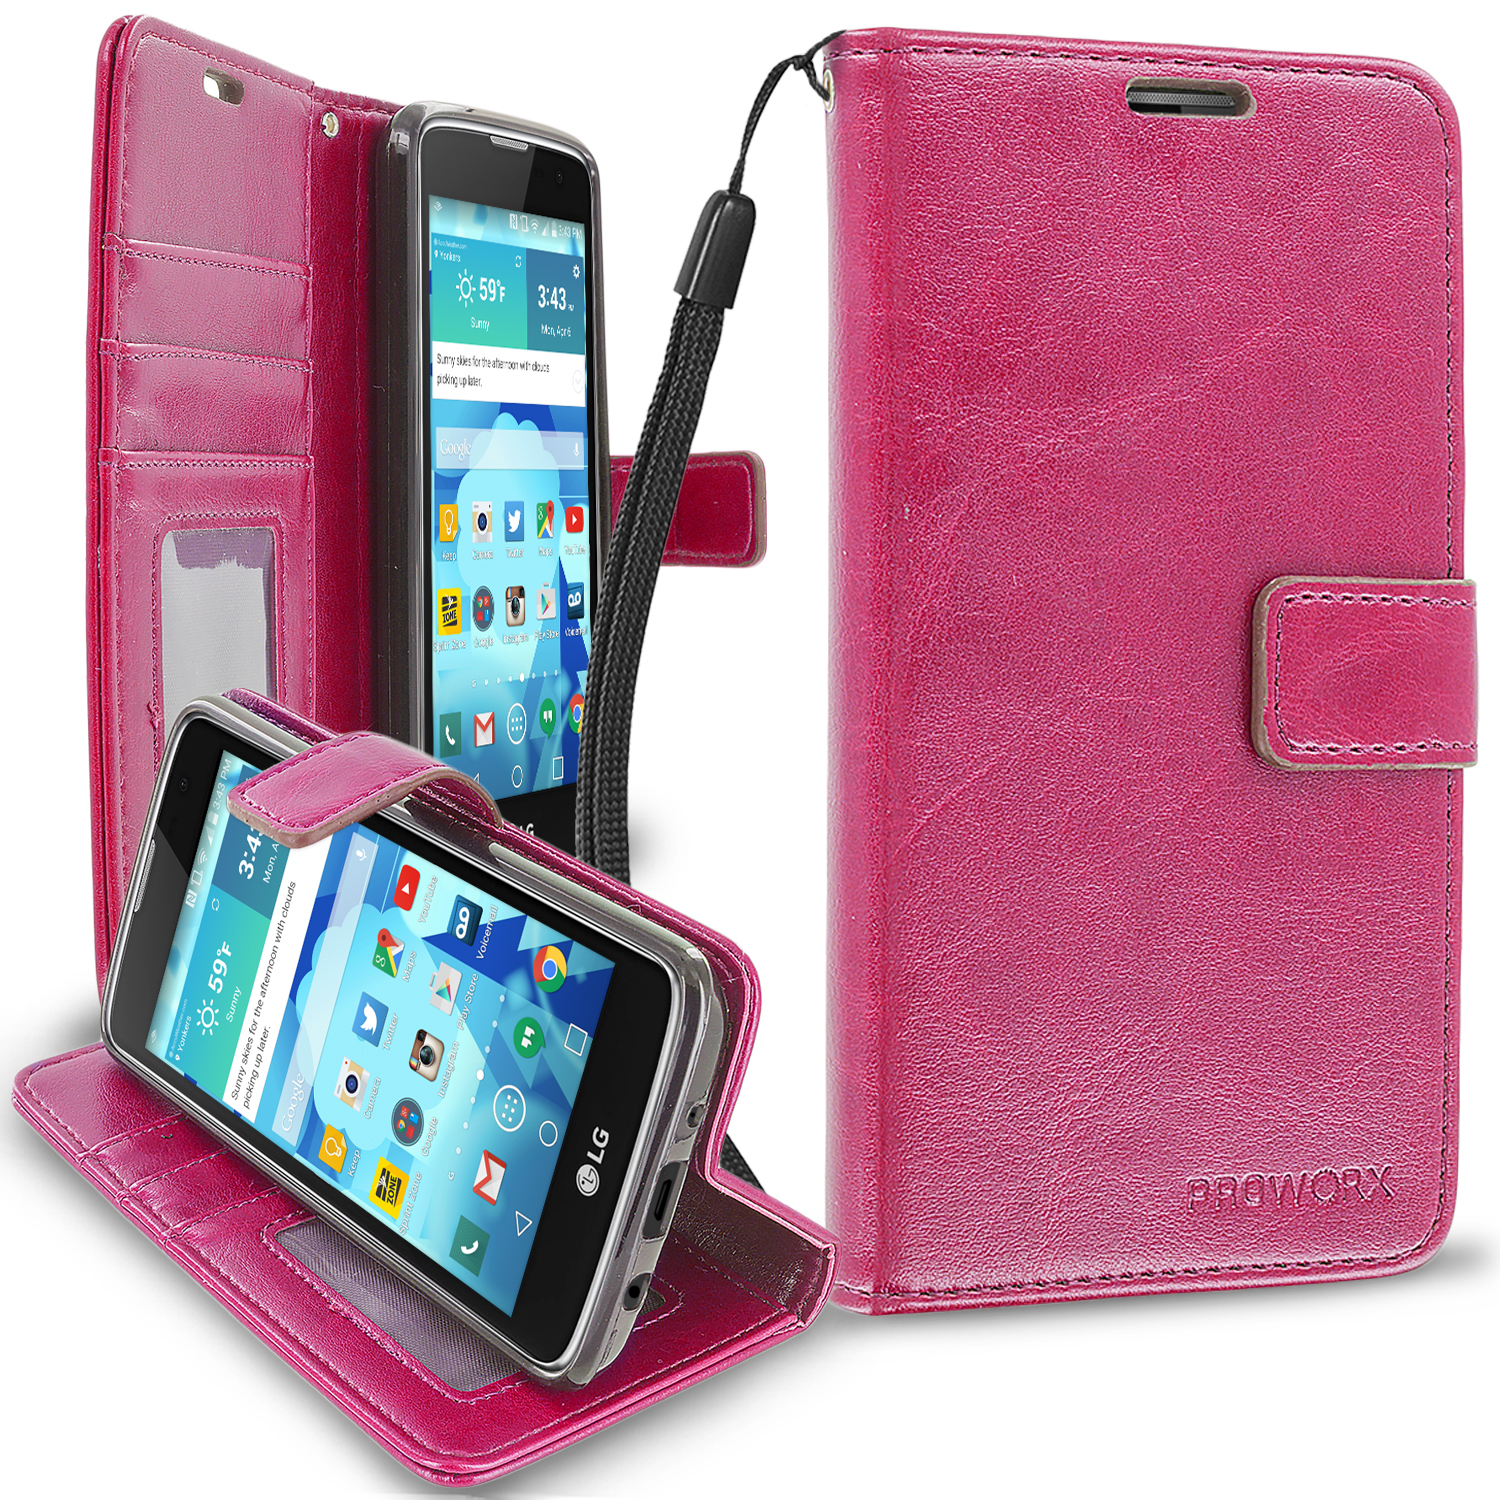 LG Tribute 5 K7 Phoenix 2 Escape 3 Treasure Hot Pink ProWorx Wallet Case Luxury PU Leather Case Cover With Card Slots & Stand